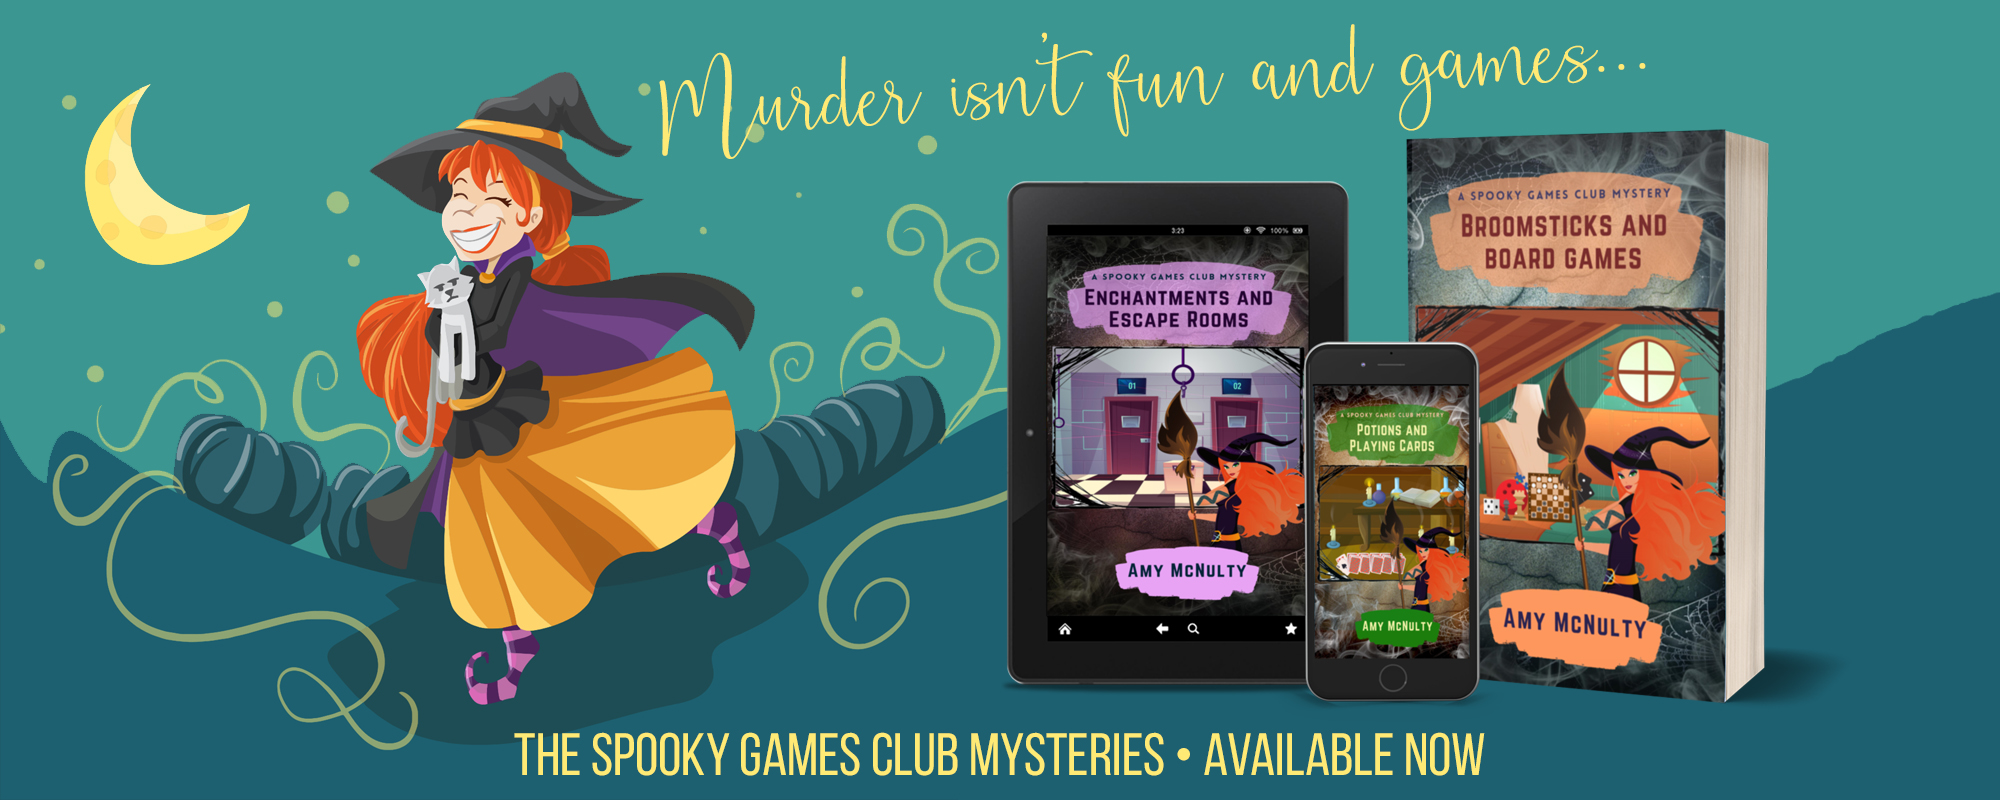 The Spooky Games Club Mysteries by Amy McNulty, available now